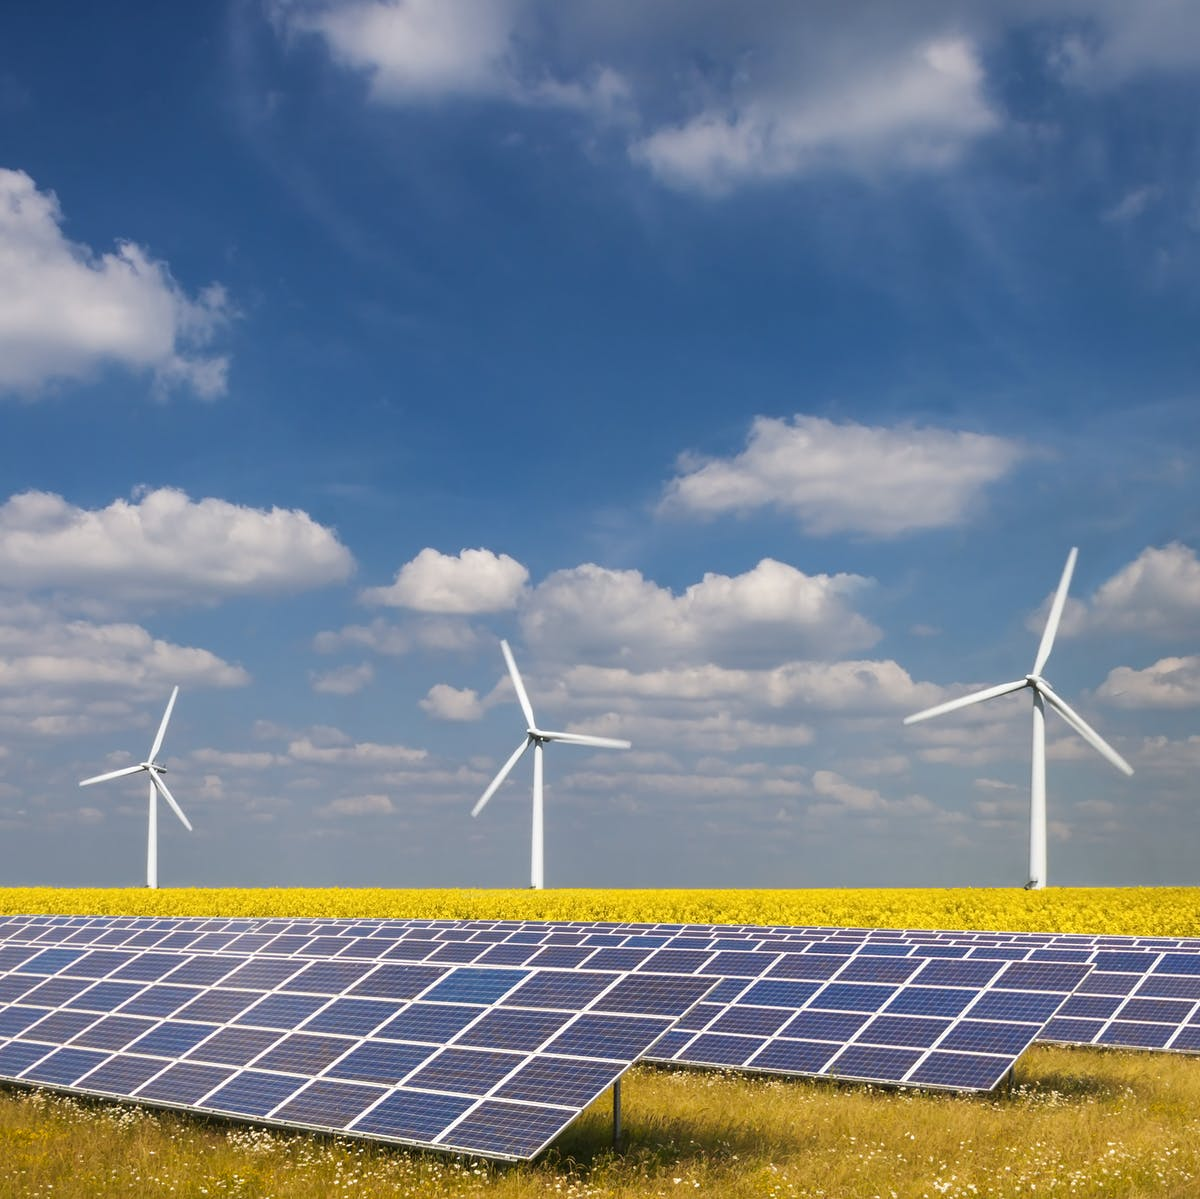 Renewable energy could save us trillions in health costs